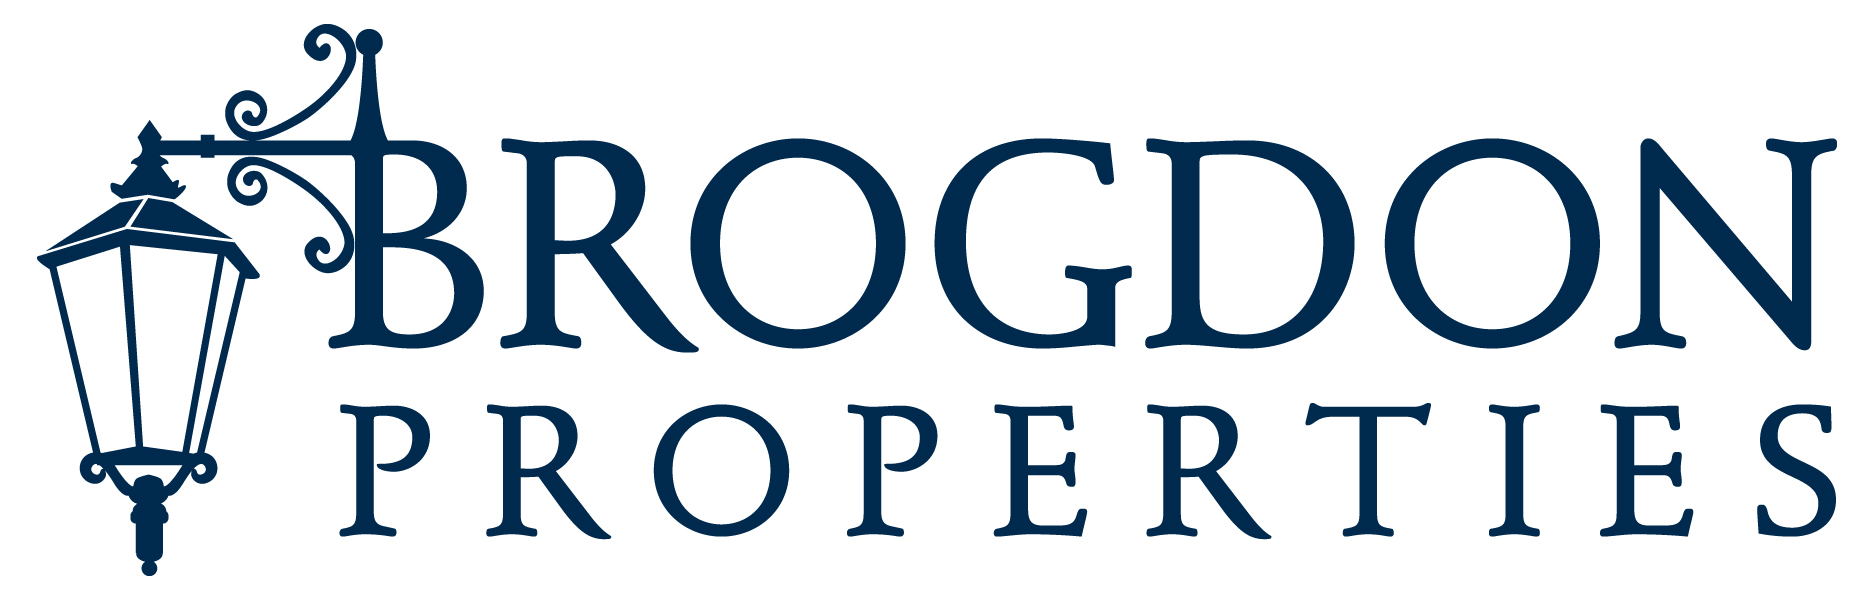 Brogden Properties FINAL LOGO.jpg